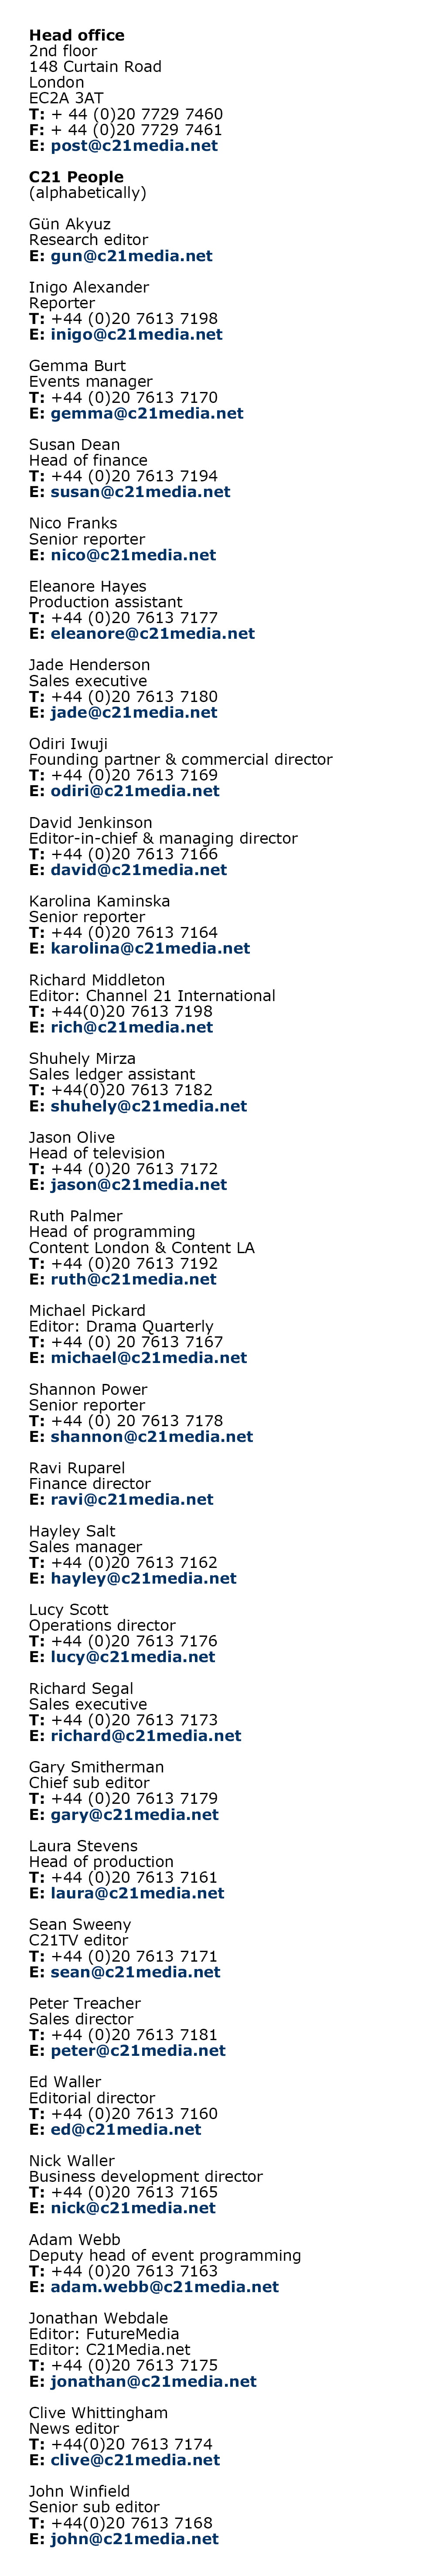 Web Contacts August 2019